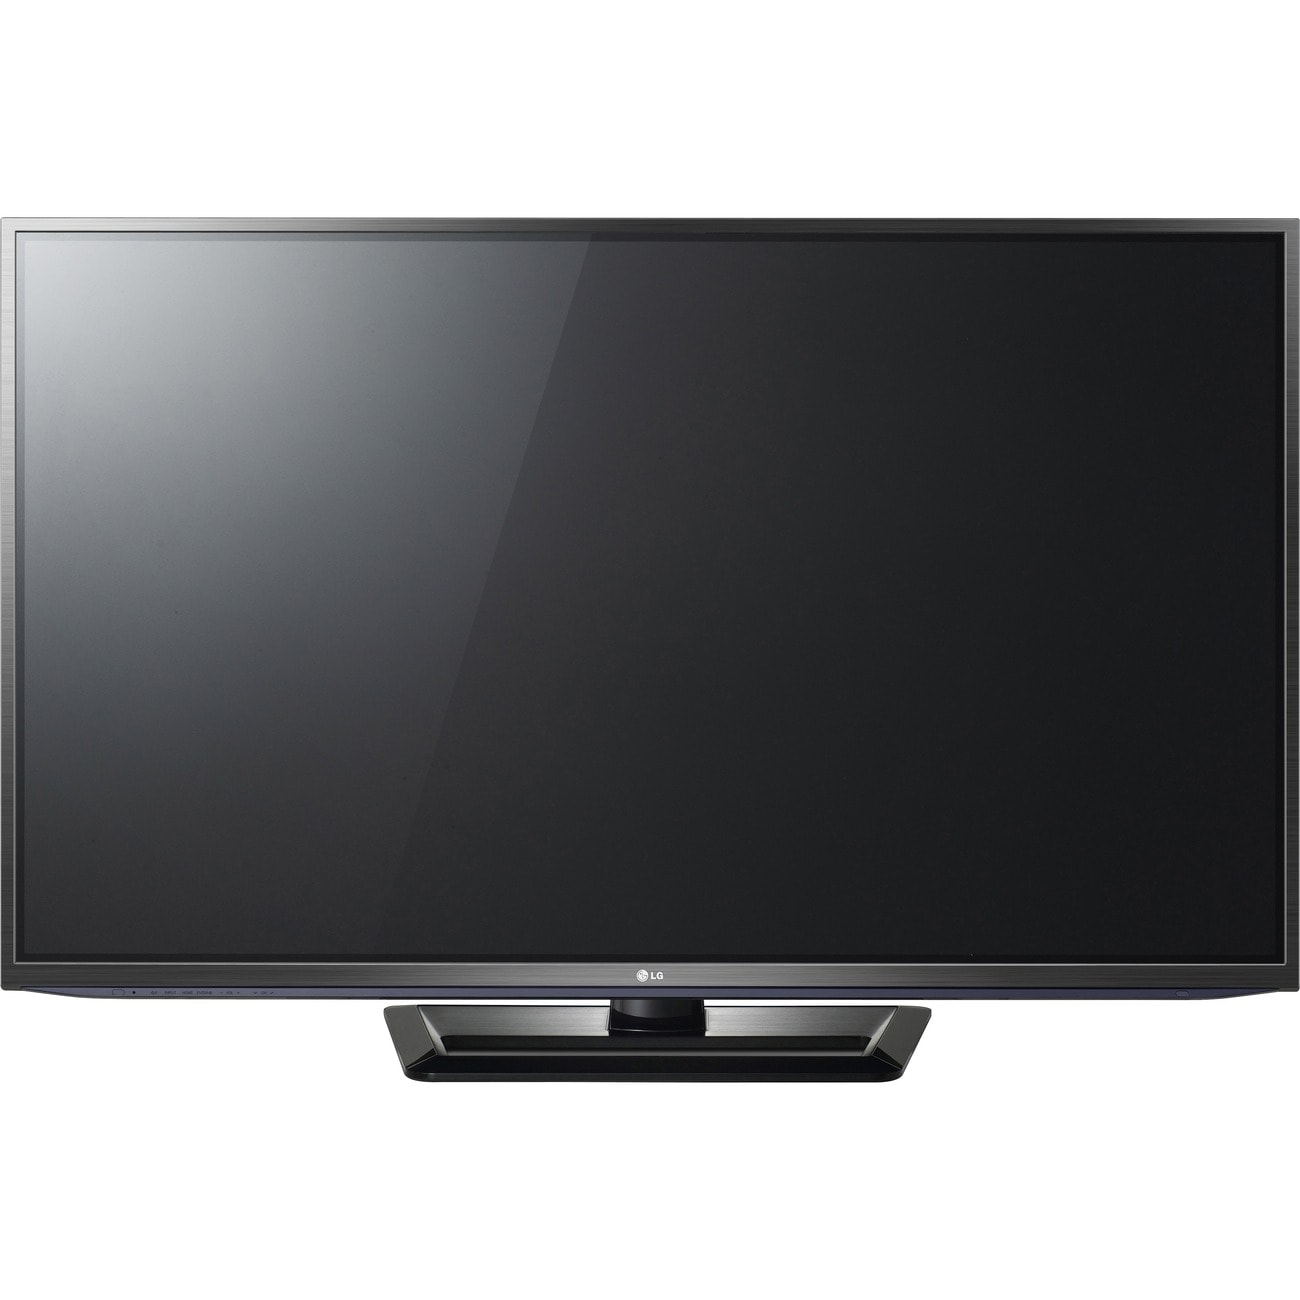 "LG 60PM6700 60"" 3D 1080p Plasma TV - 16:9 - HDTV 1080p - 600 Hz - Thumbnail 0"